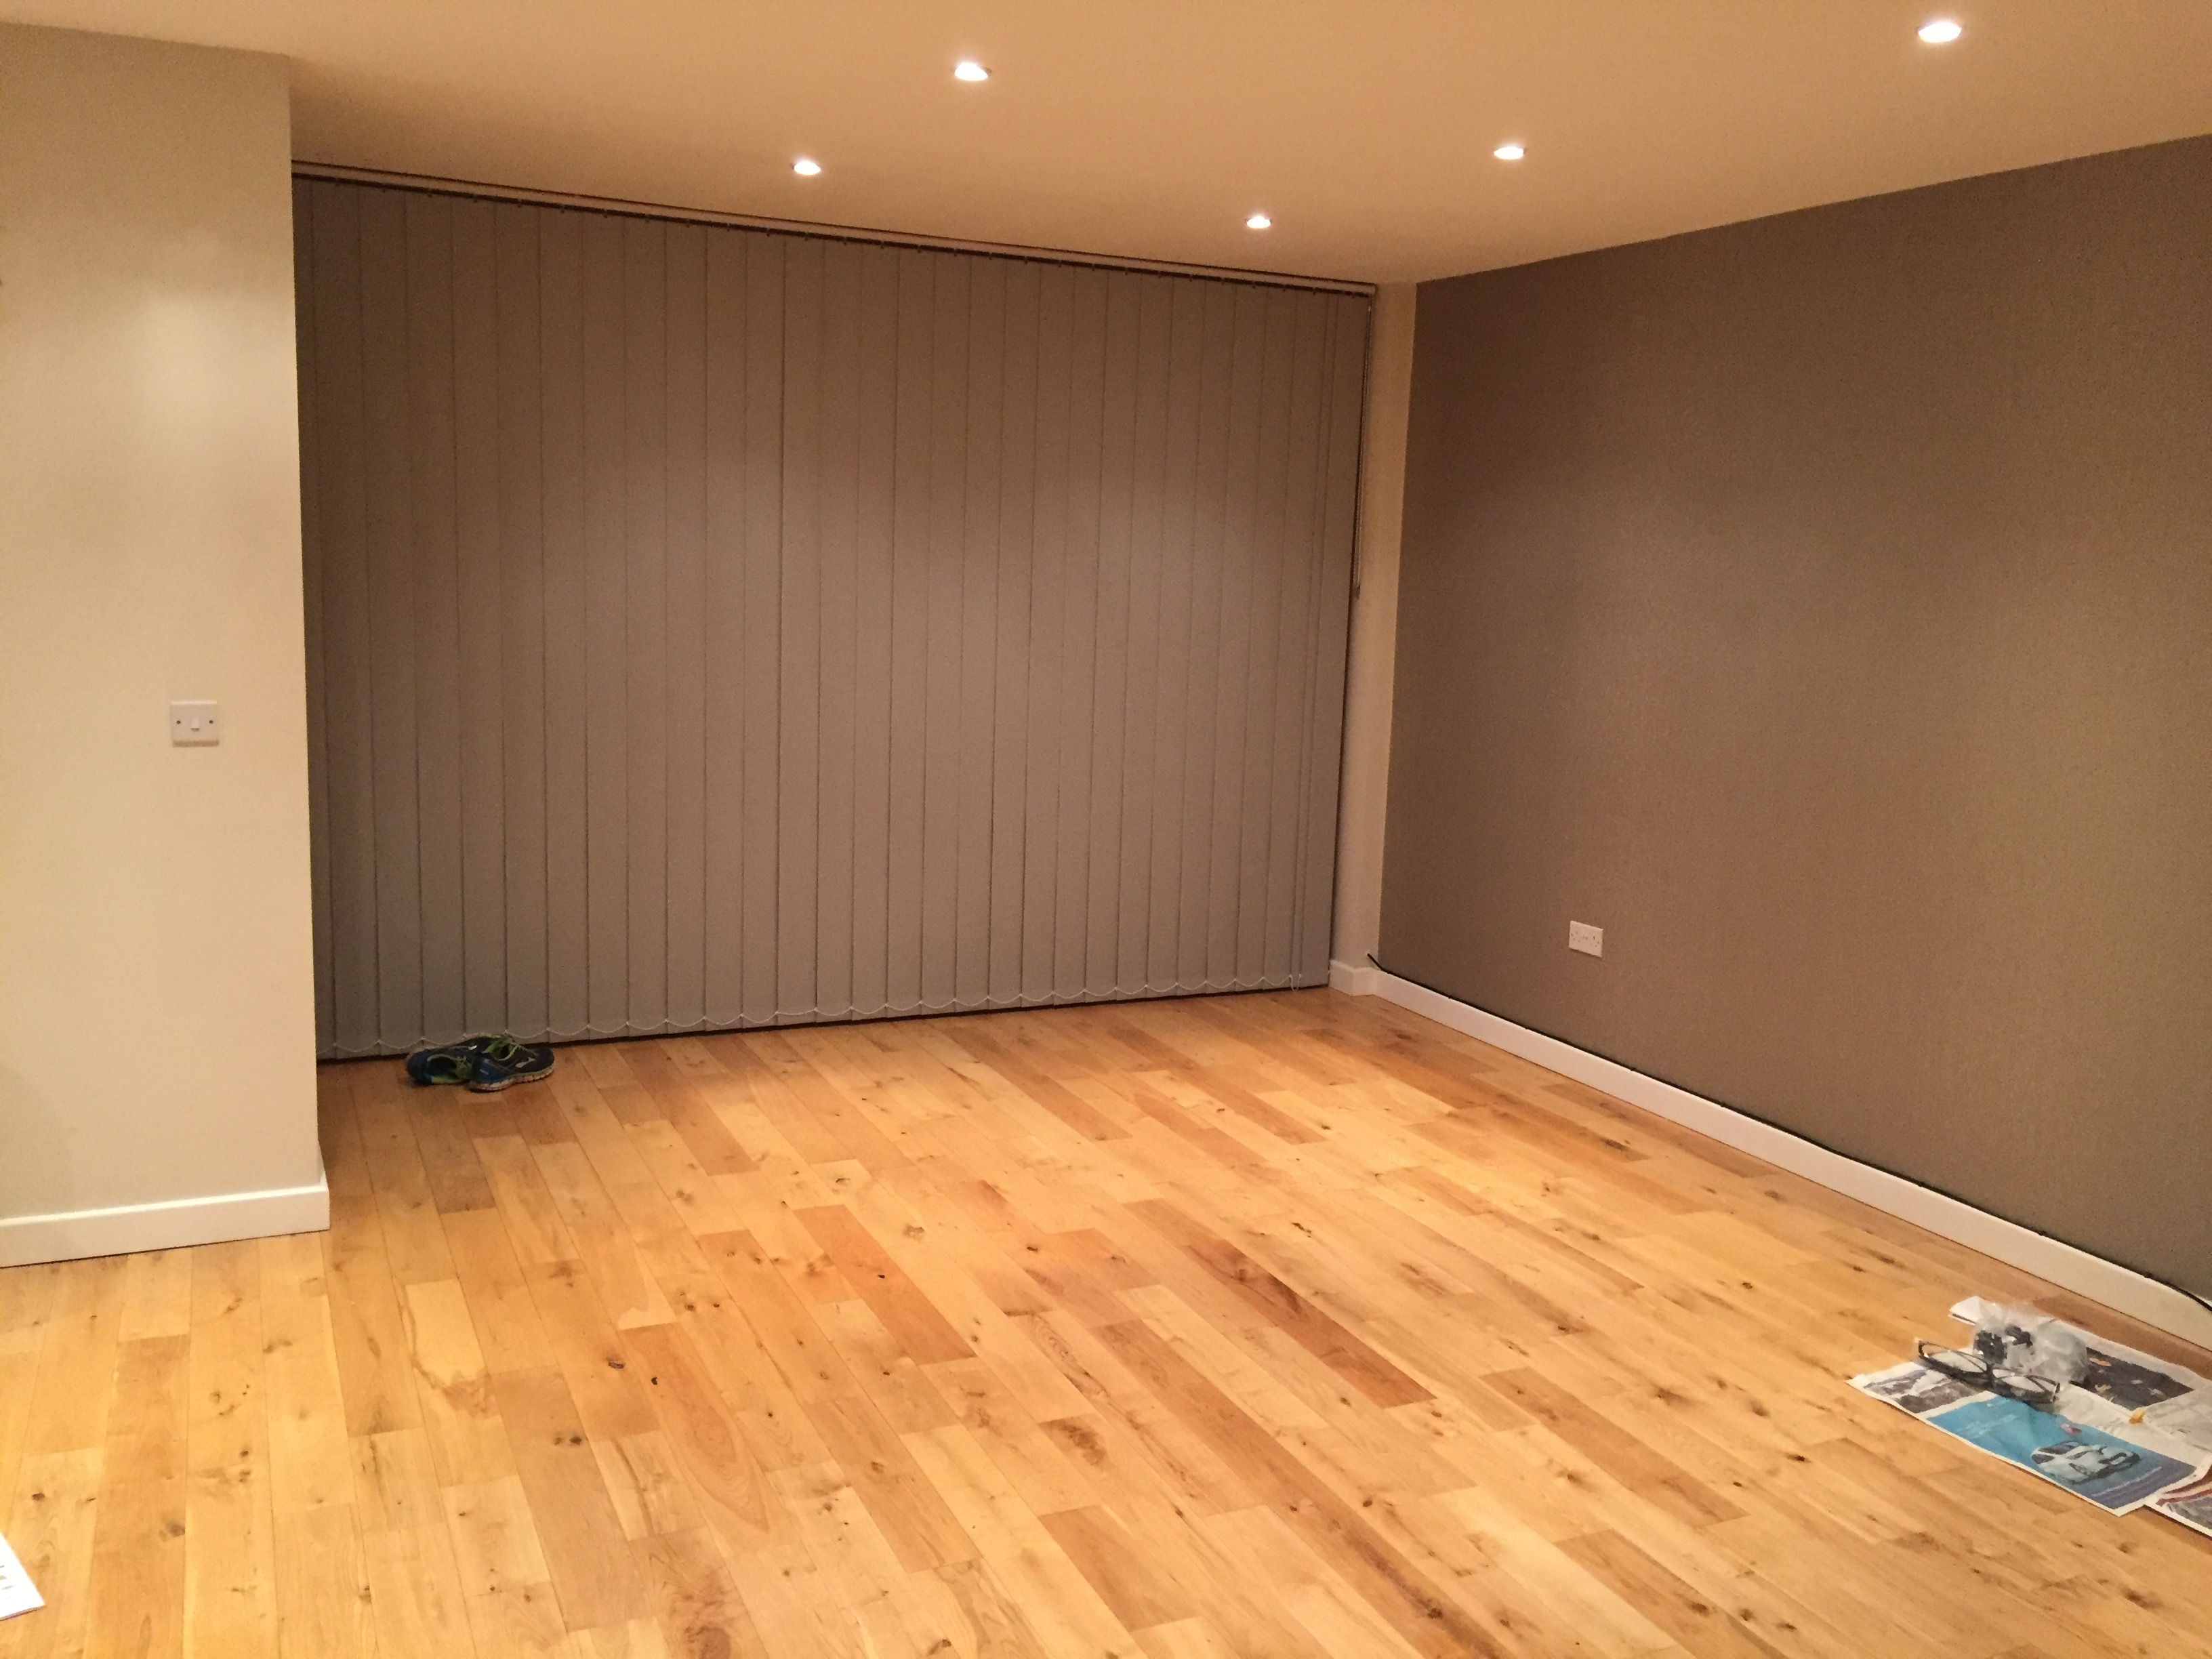 A photo of the client's living room which is fairly bare and uninviting